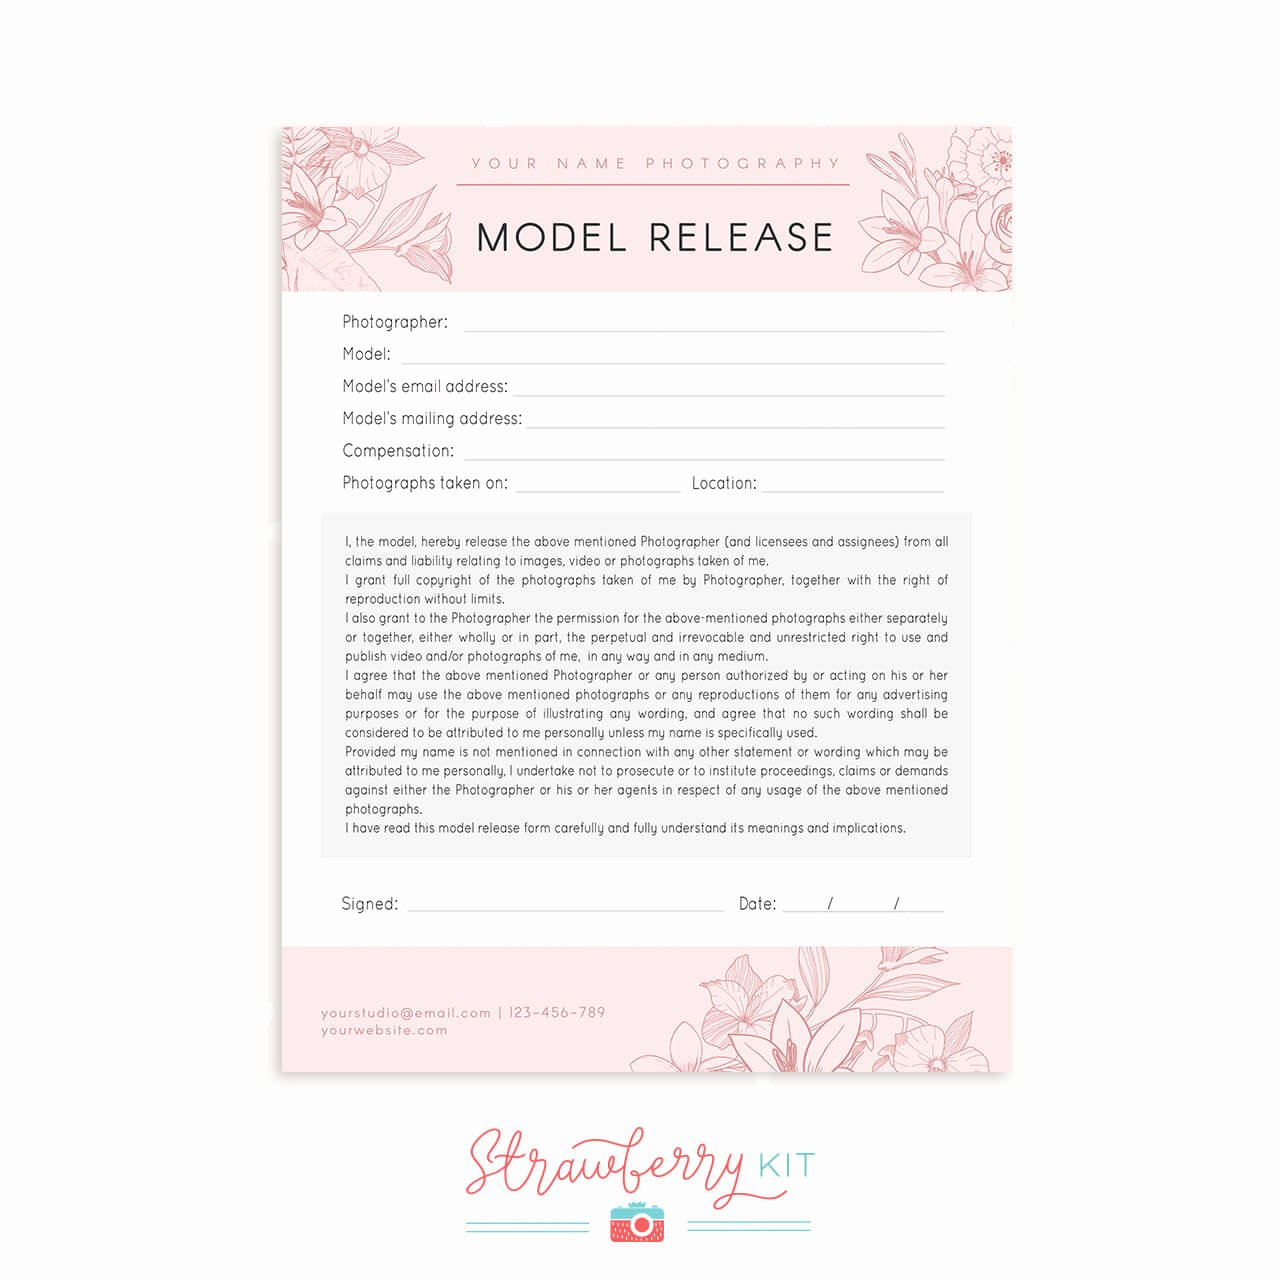 Model Release form Template Best Of Model Release form Floral Strawberry Kit